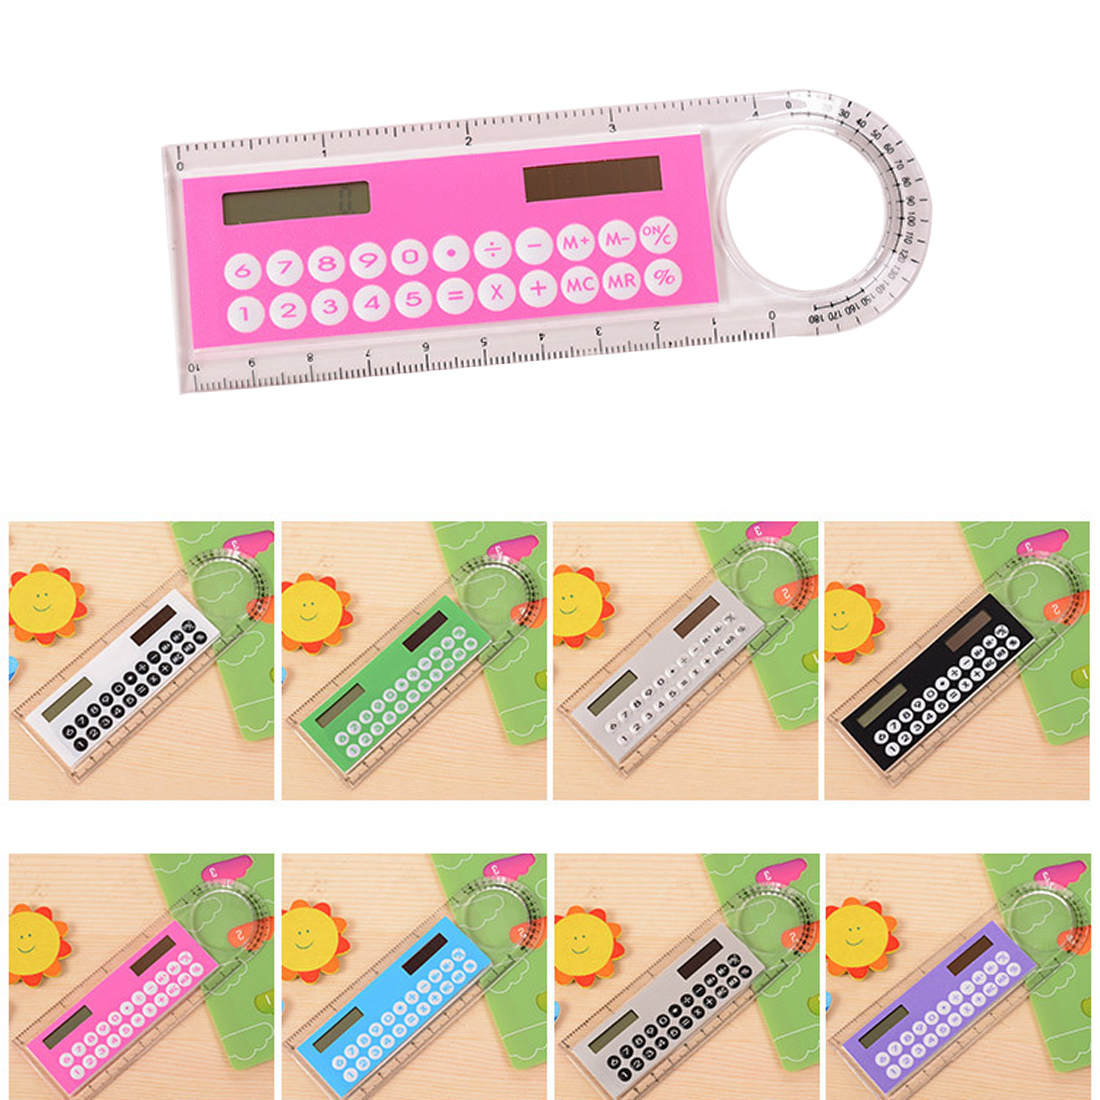 Color Random  Hot Selling Solar Mini Calculator Magnifier Multifunction 10cm Ultra-thin Ruler Calculadora Office SuppliesColor Random  Hot Selling Solar Mini Calculator Magnifier Multifunction 10cm Ultra-thin Ruler Calculadora Office Supplies